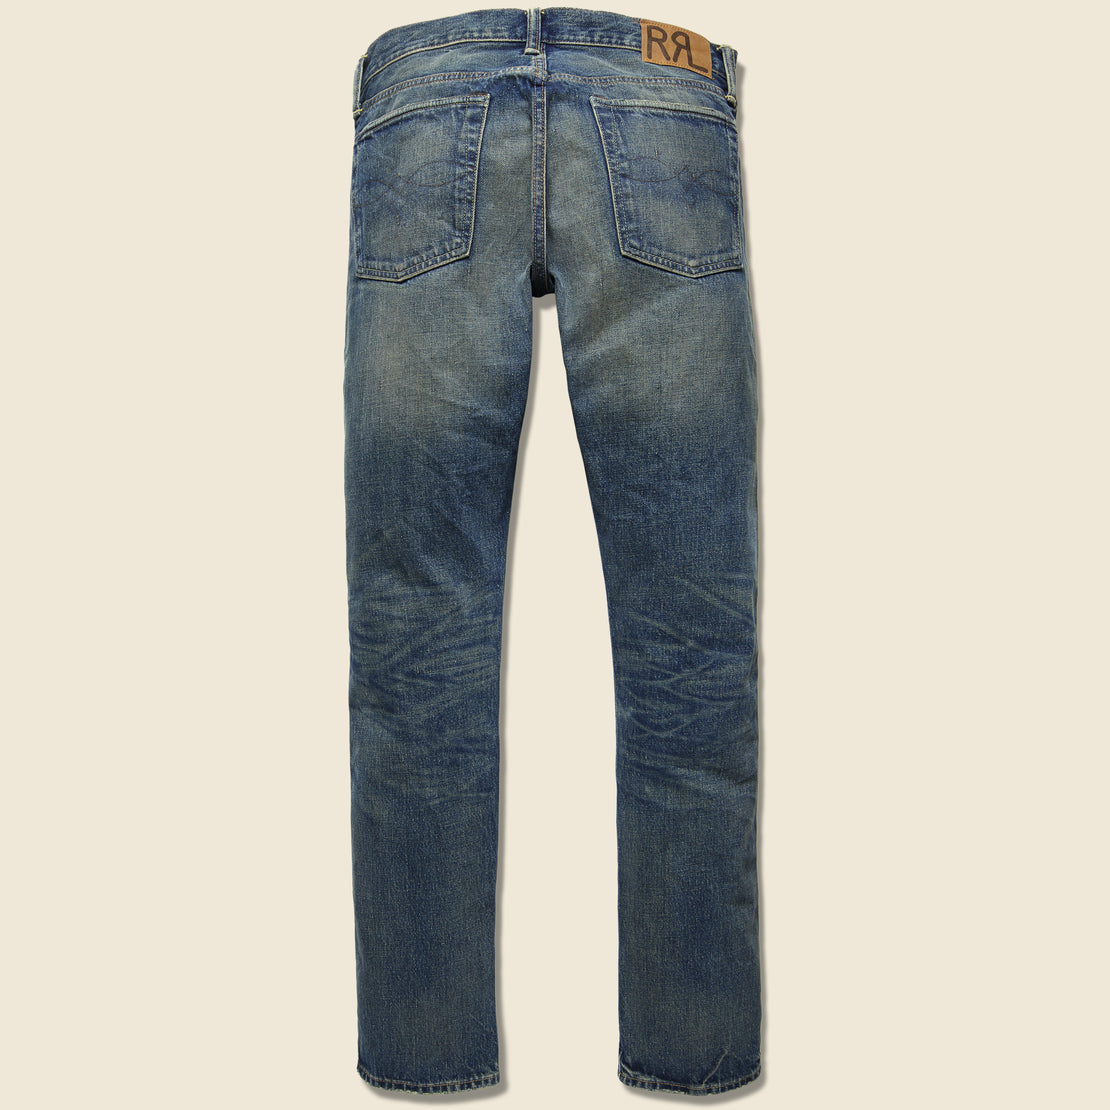 Slim Fit Jean - Conrad Wash